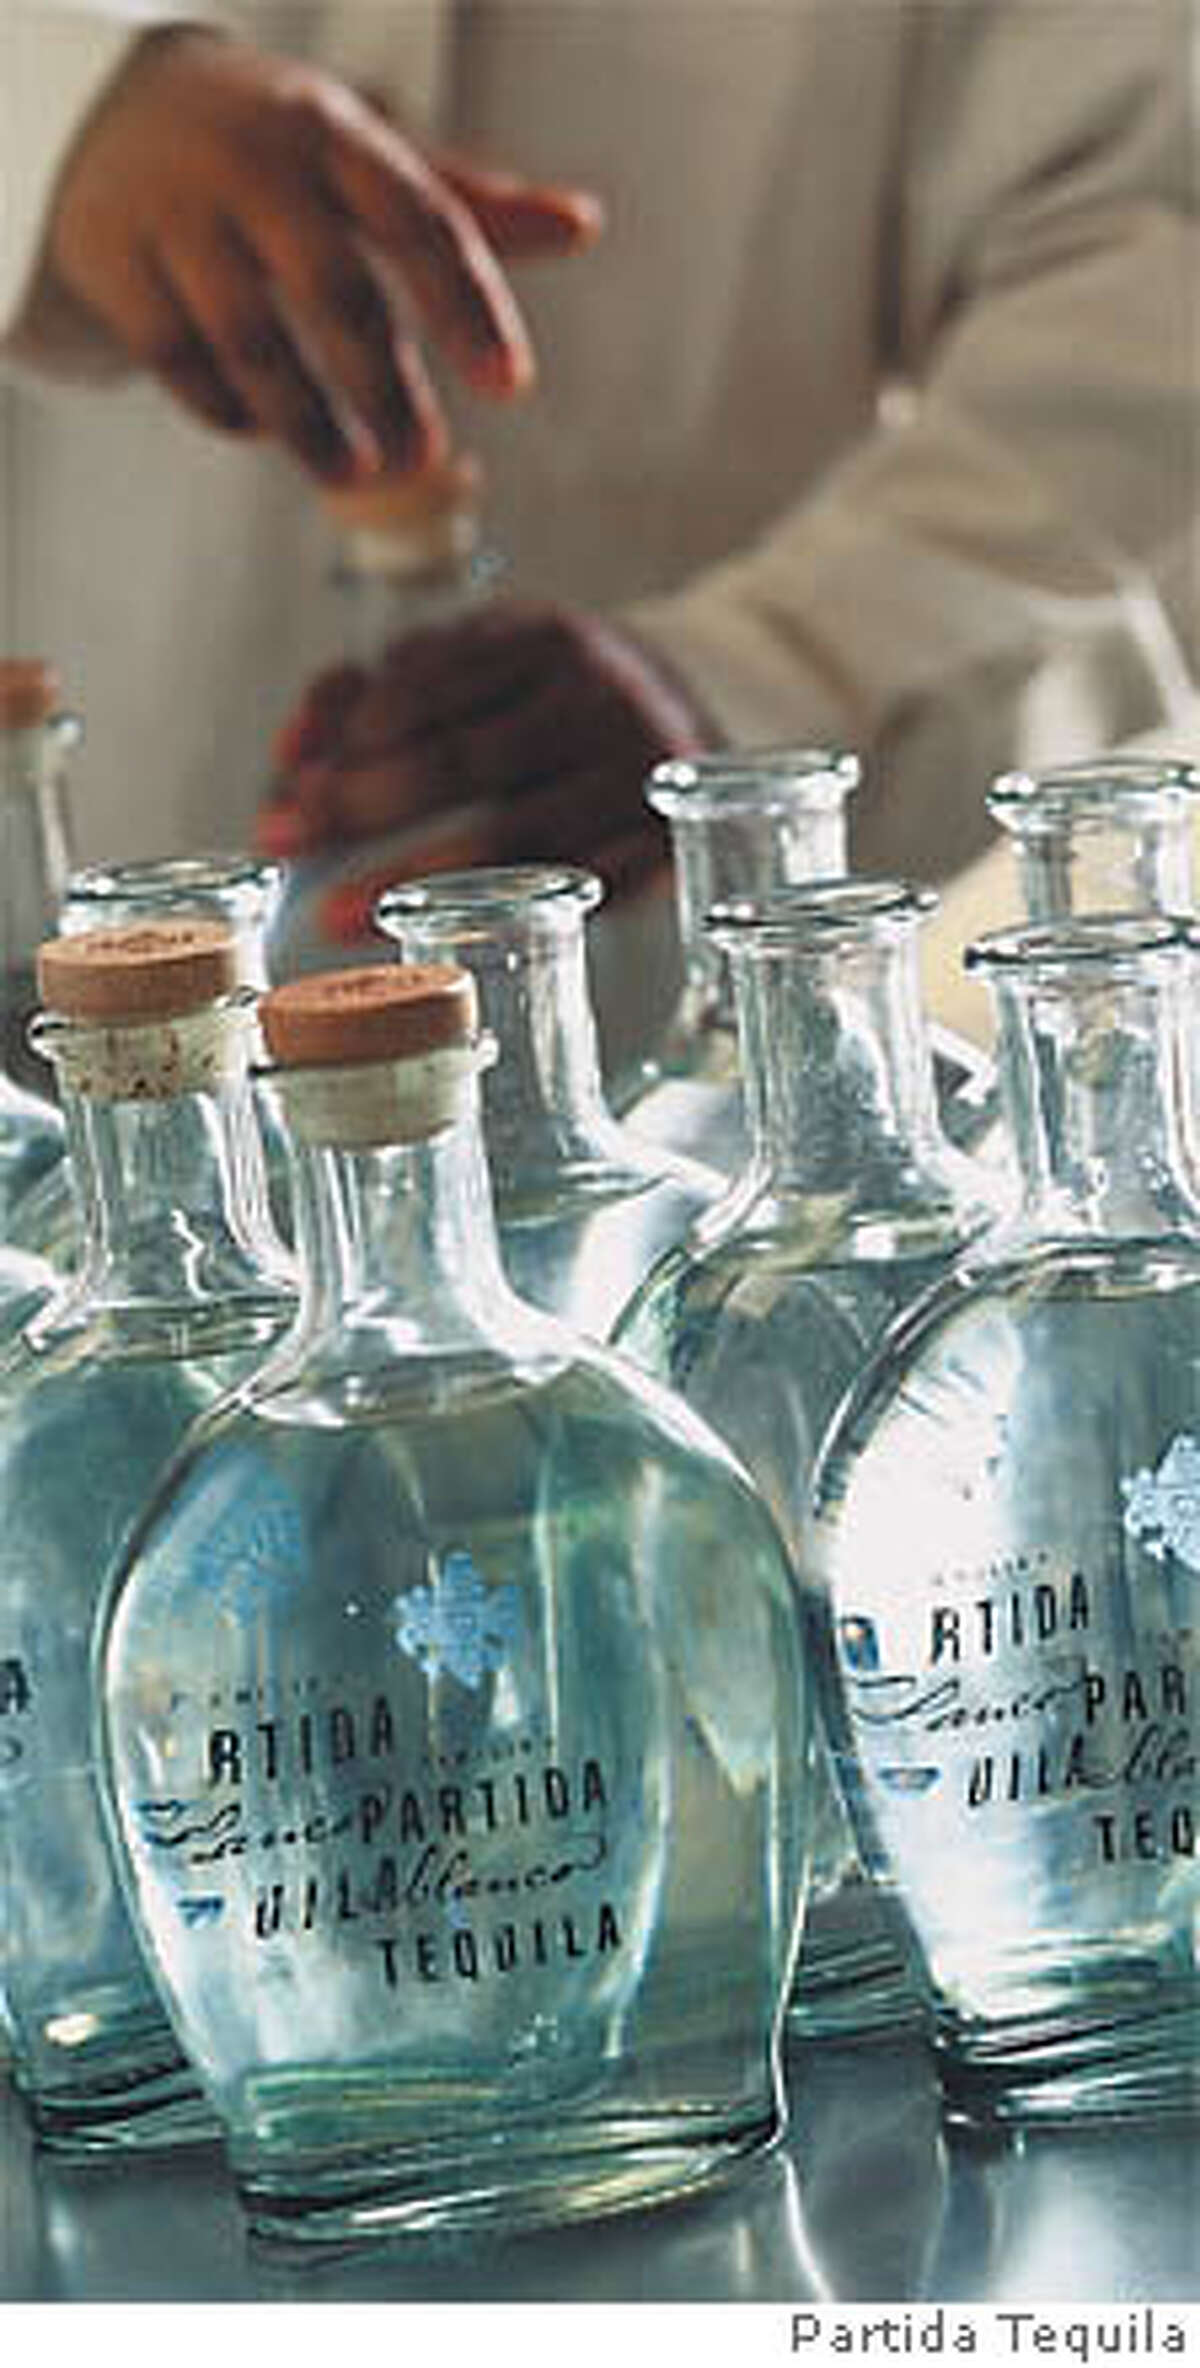 Bottles of Partida Tequila. Photo courtesy of Partida Tequila